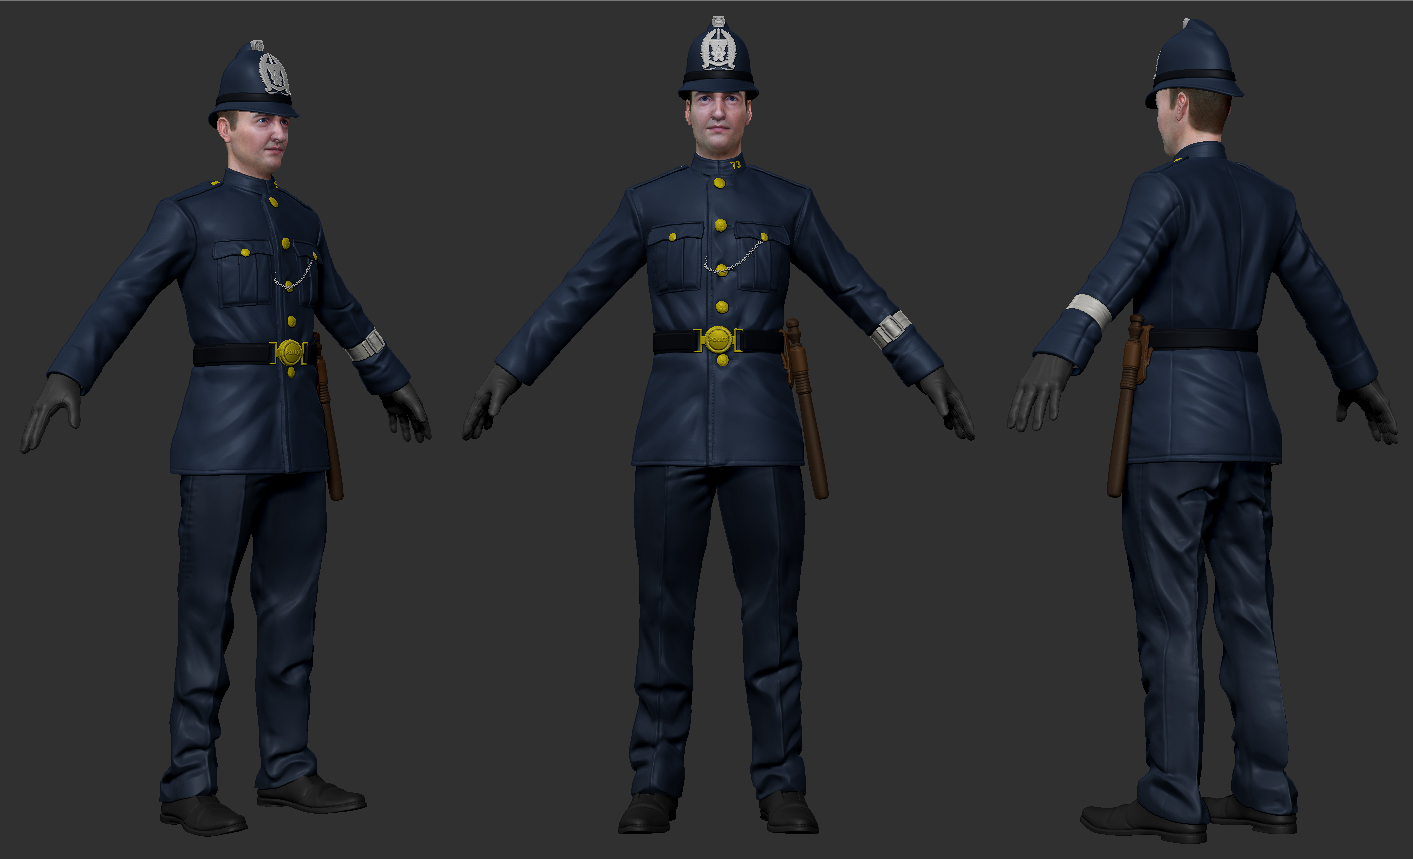 policecolour_fullbody.png